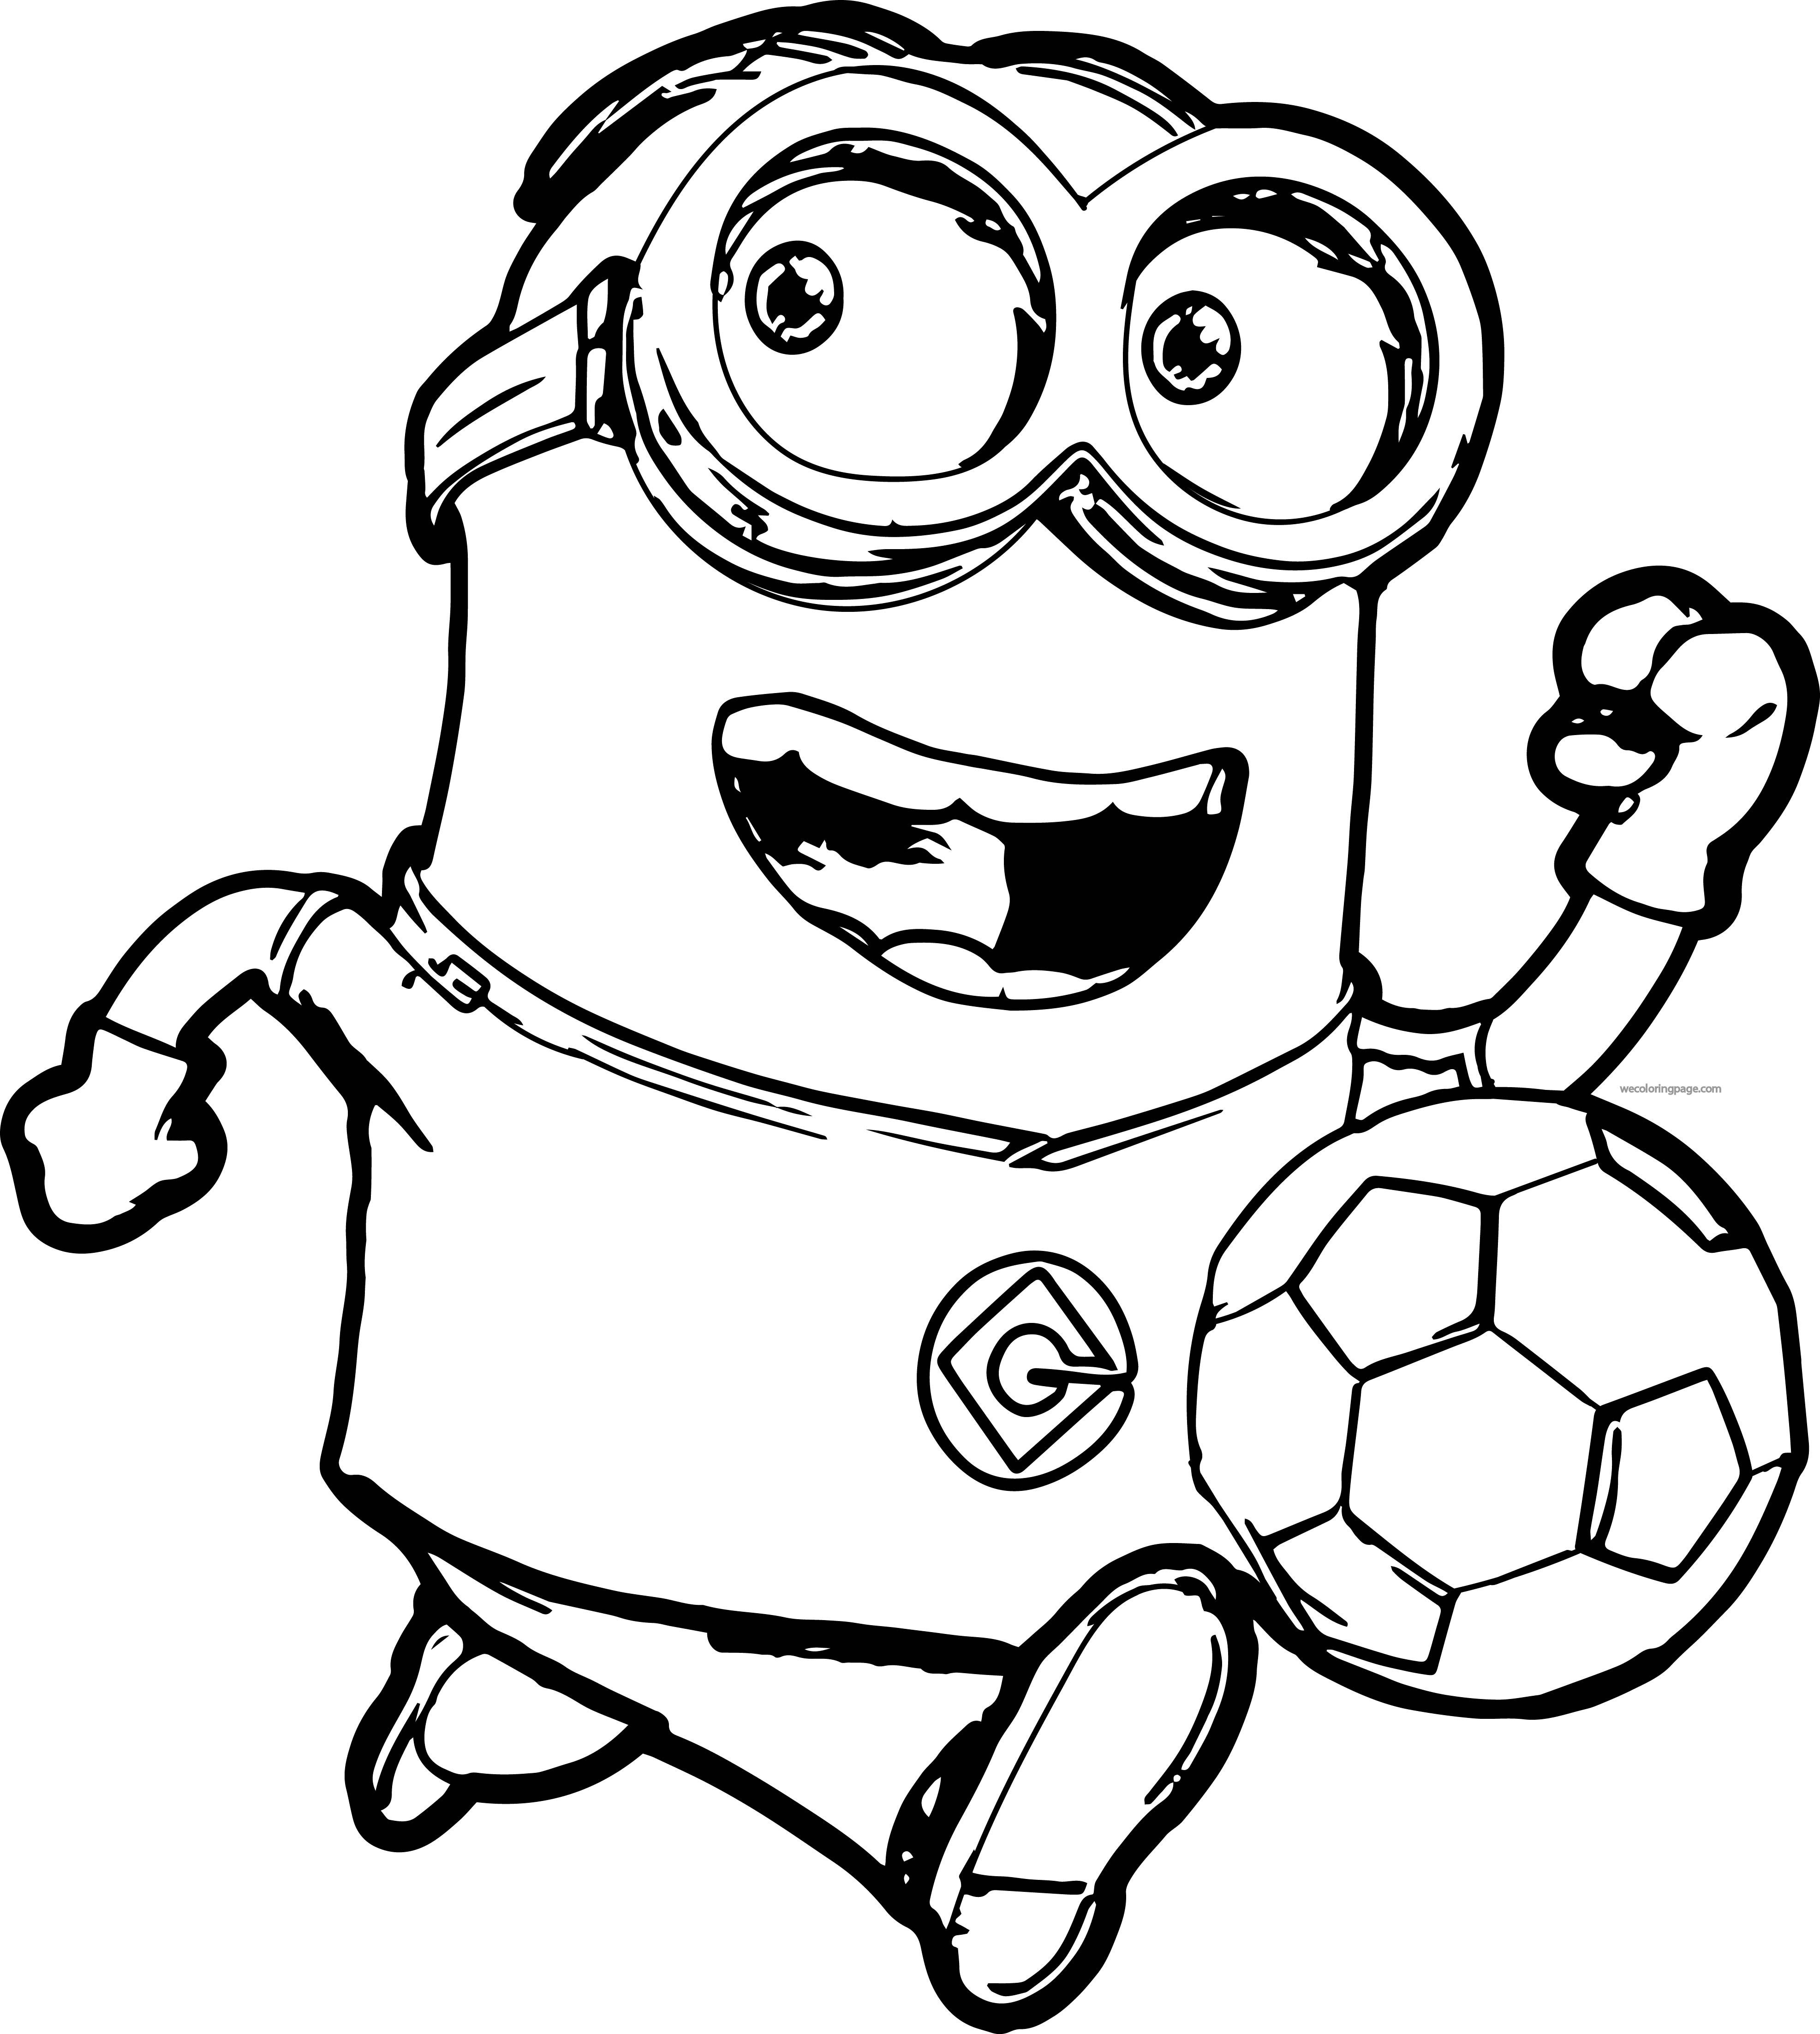 Minion Printable Coloring Pages  Collection 19t - Free For kids